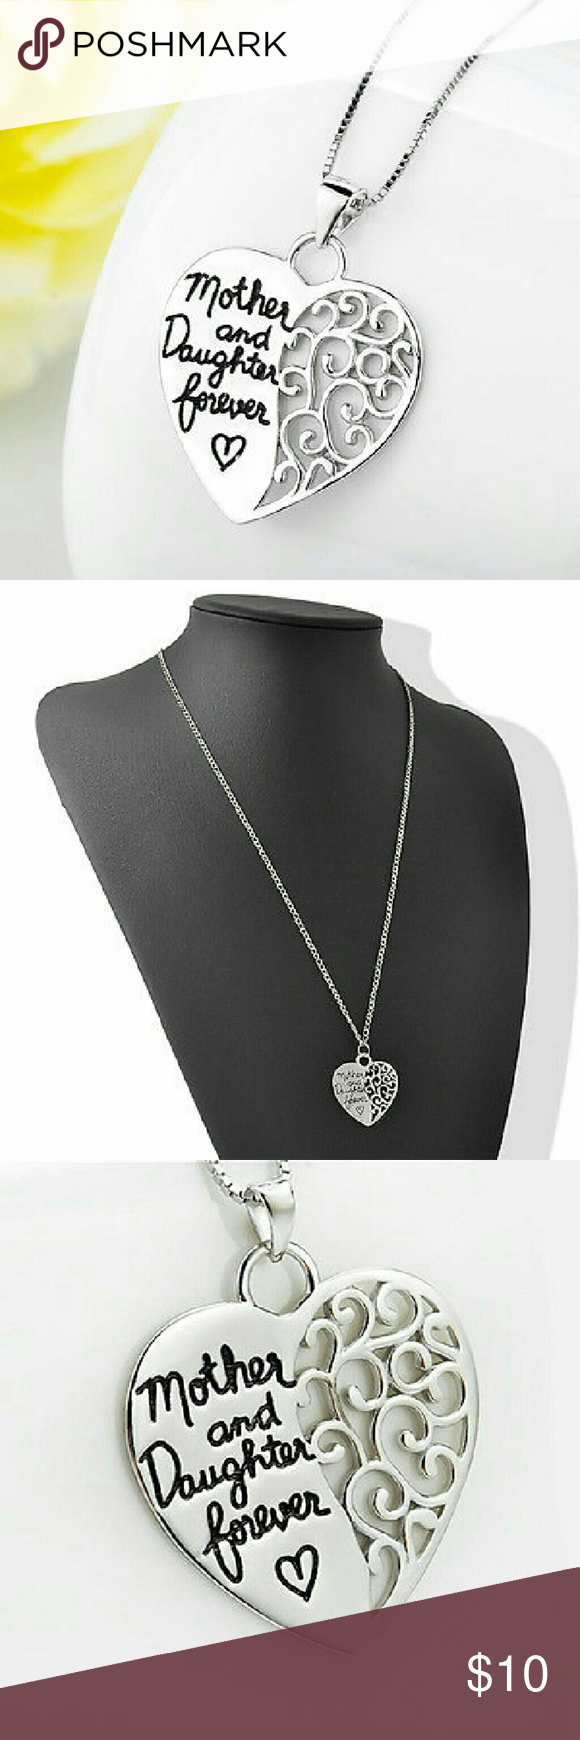 "SOLD! ENGRAVED MOTHER DAUGHTER HEART NECKLACE Beautiful long sweater chain engraved in black script"" mother and daughter forever"" steel heart hollow design pendant necklace!!! Jewelry Necklaces"